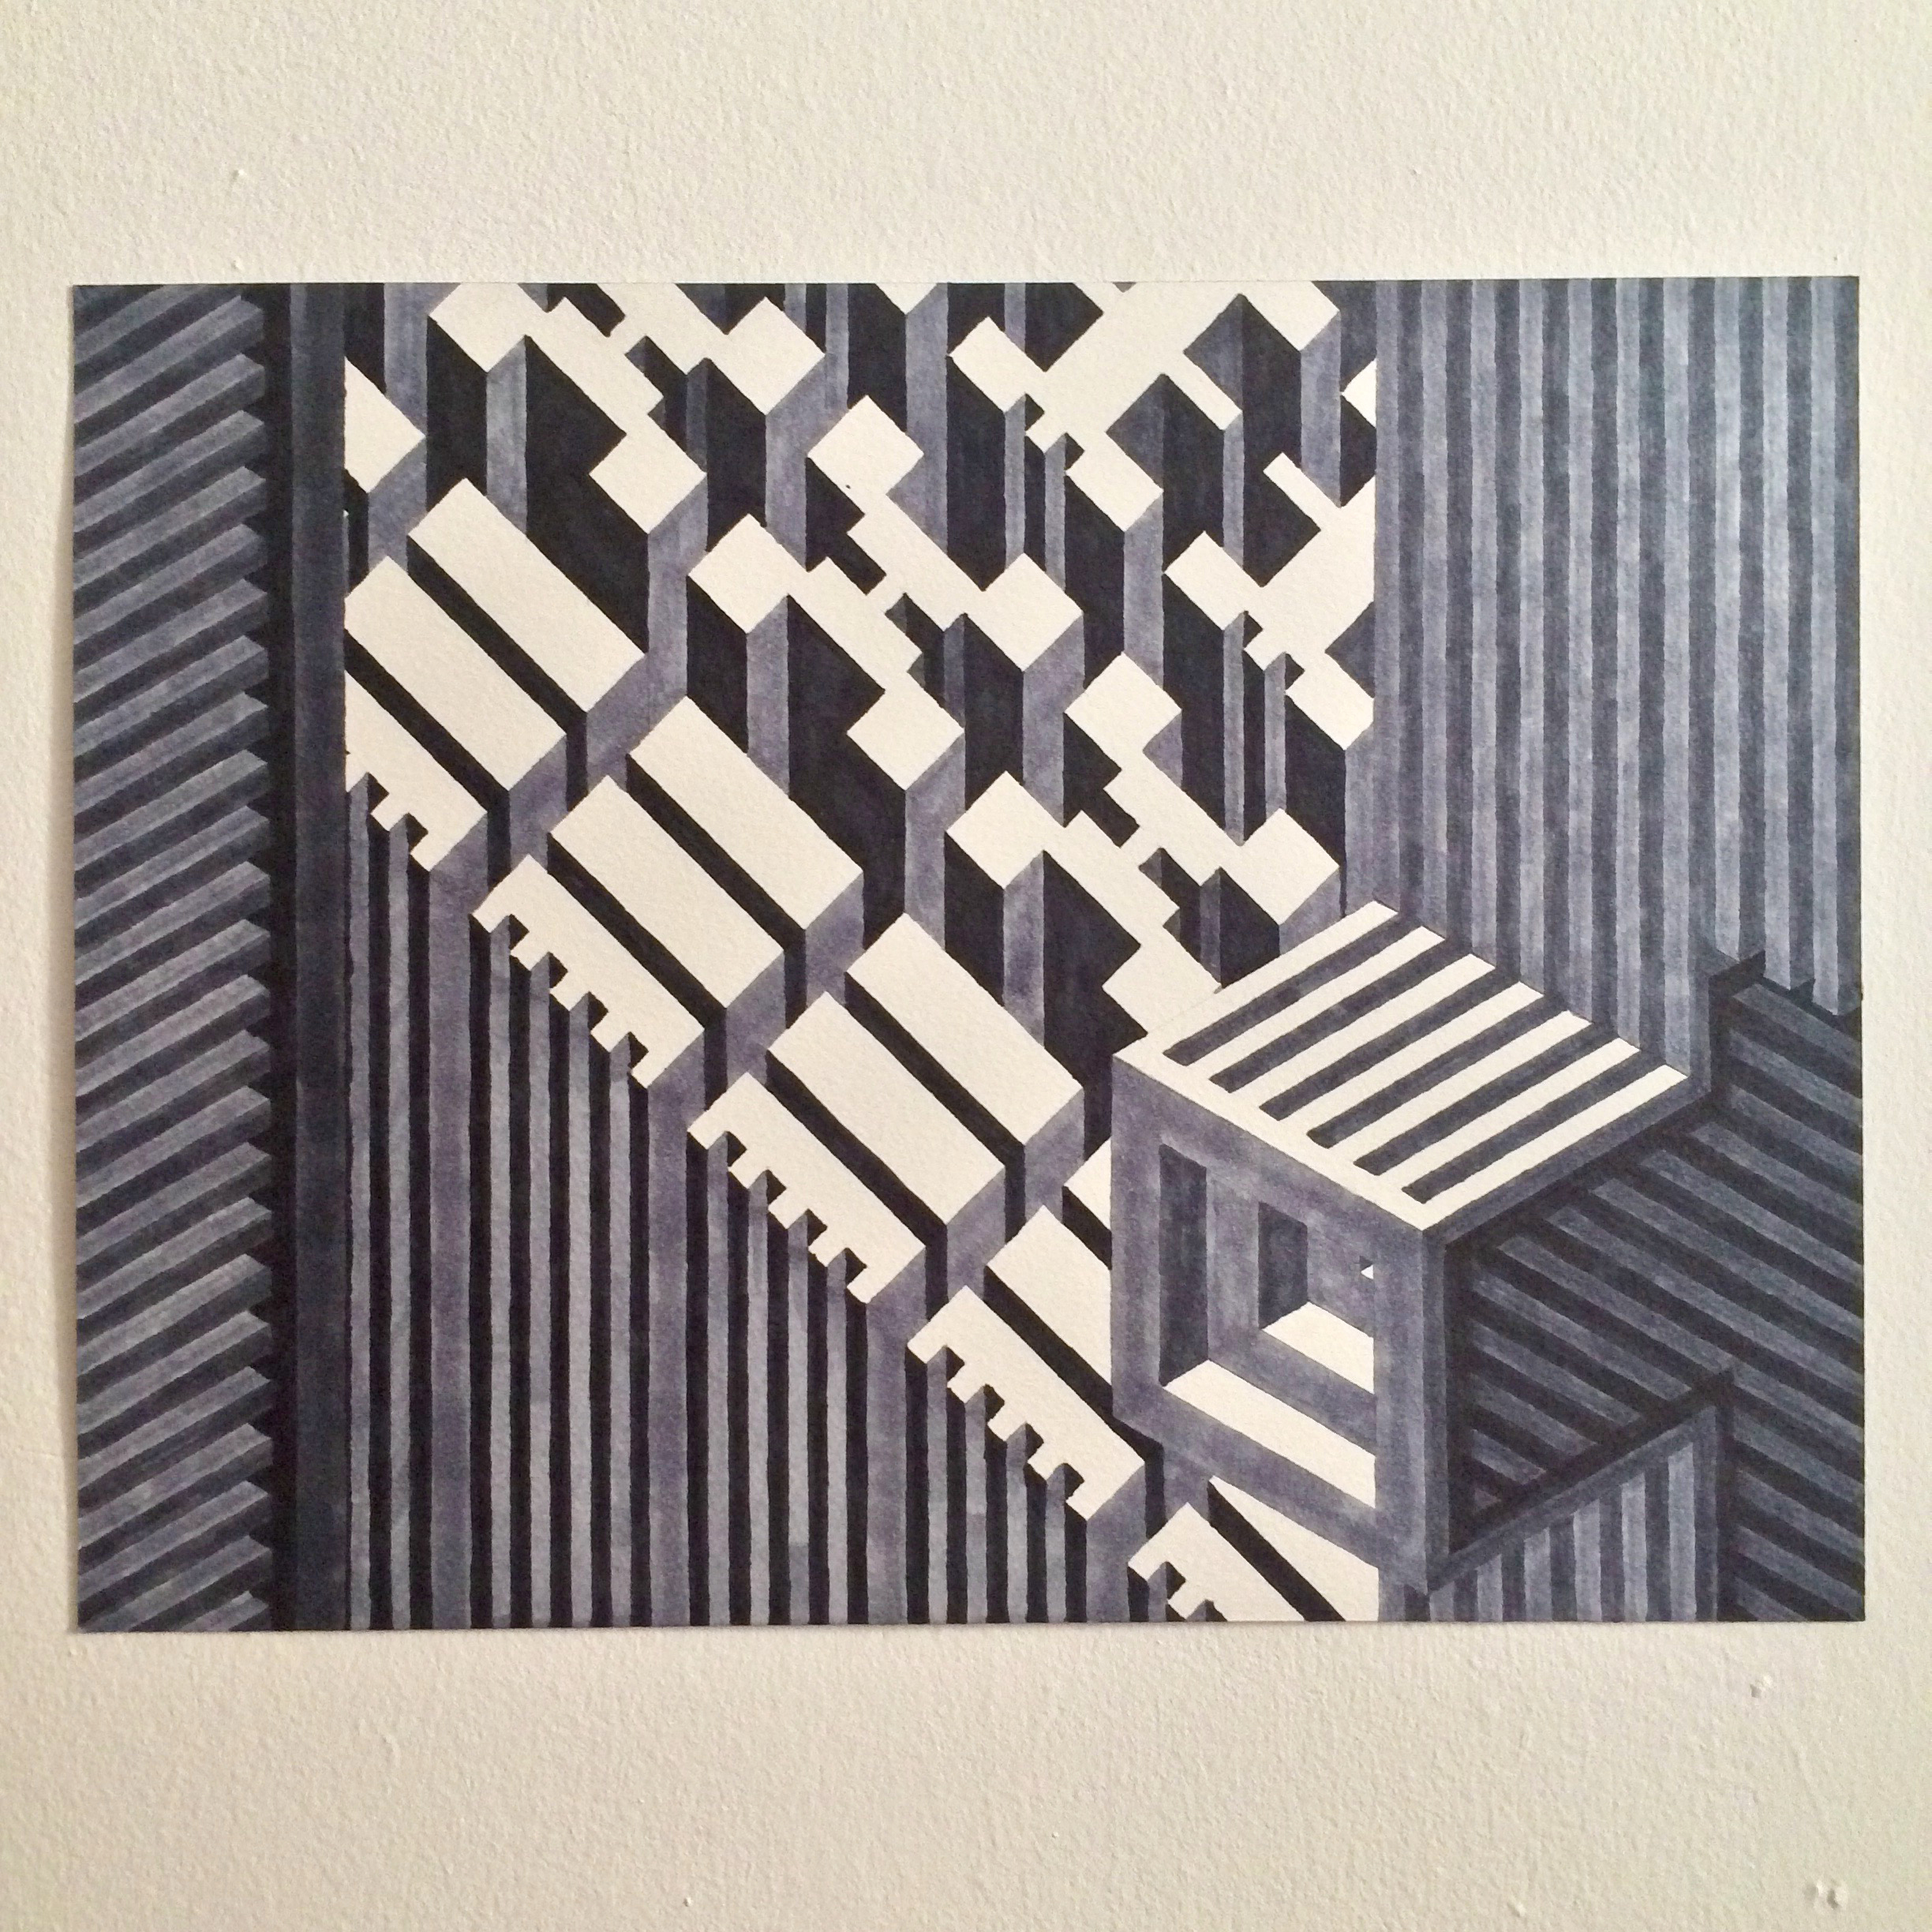 Untitled (immure), 2015  marker graphite on watercolor paper  12 x 16 inches